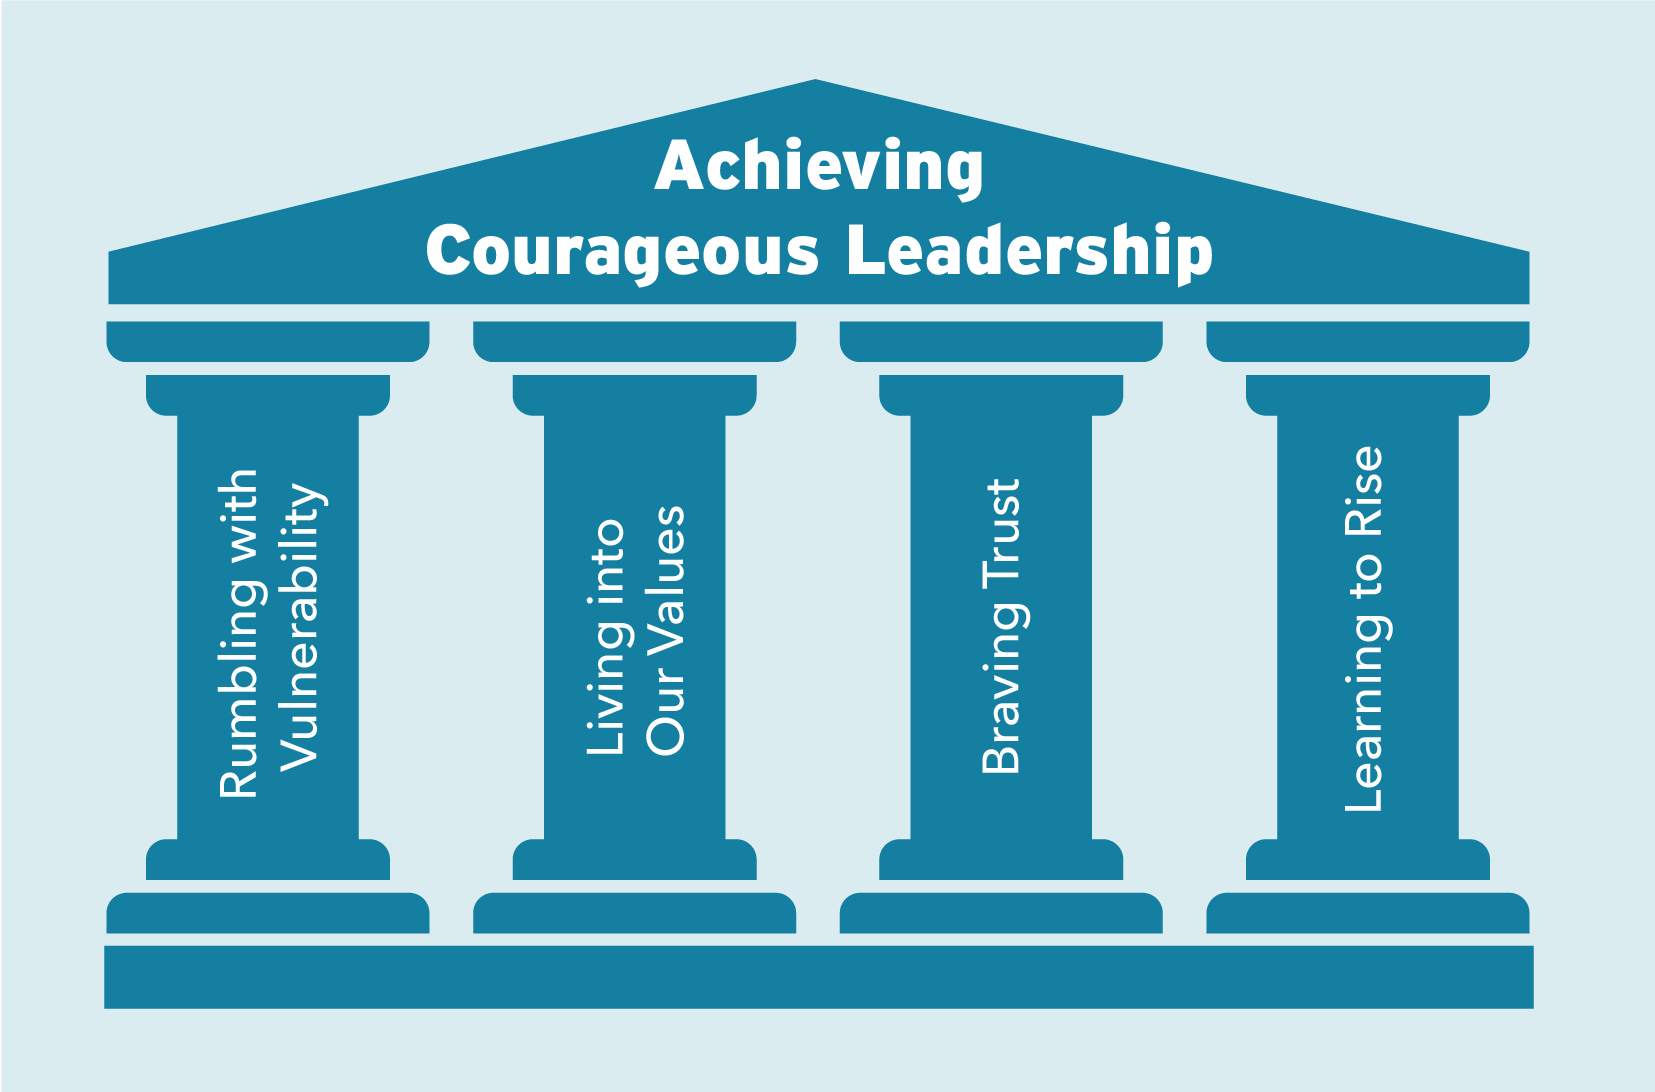 Achieving Courageous Leadership Pillars-02